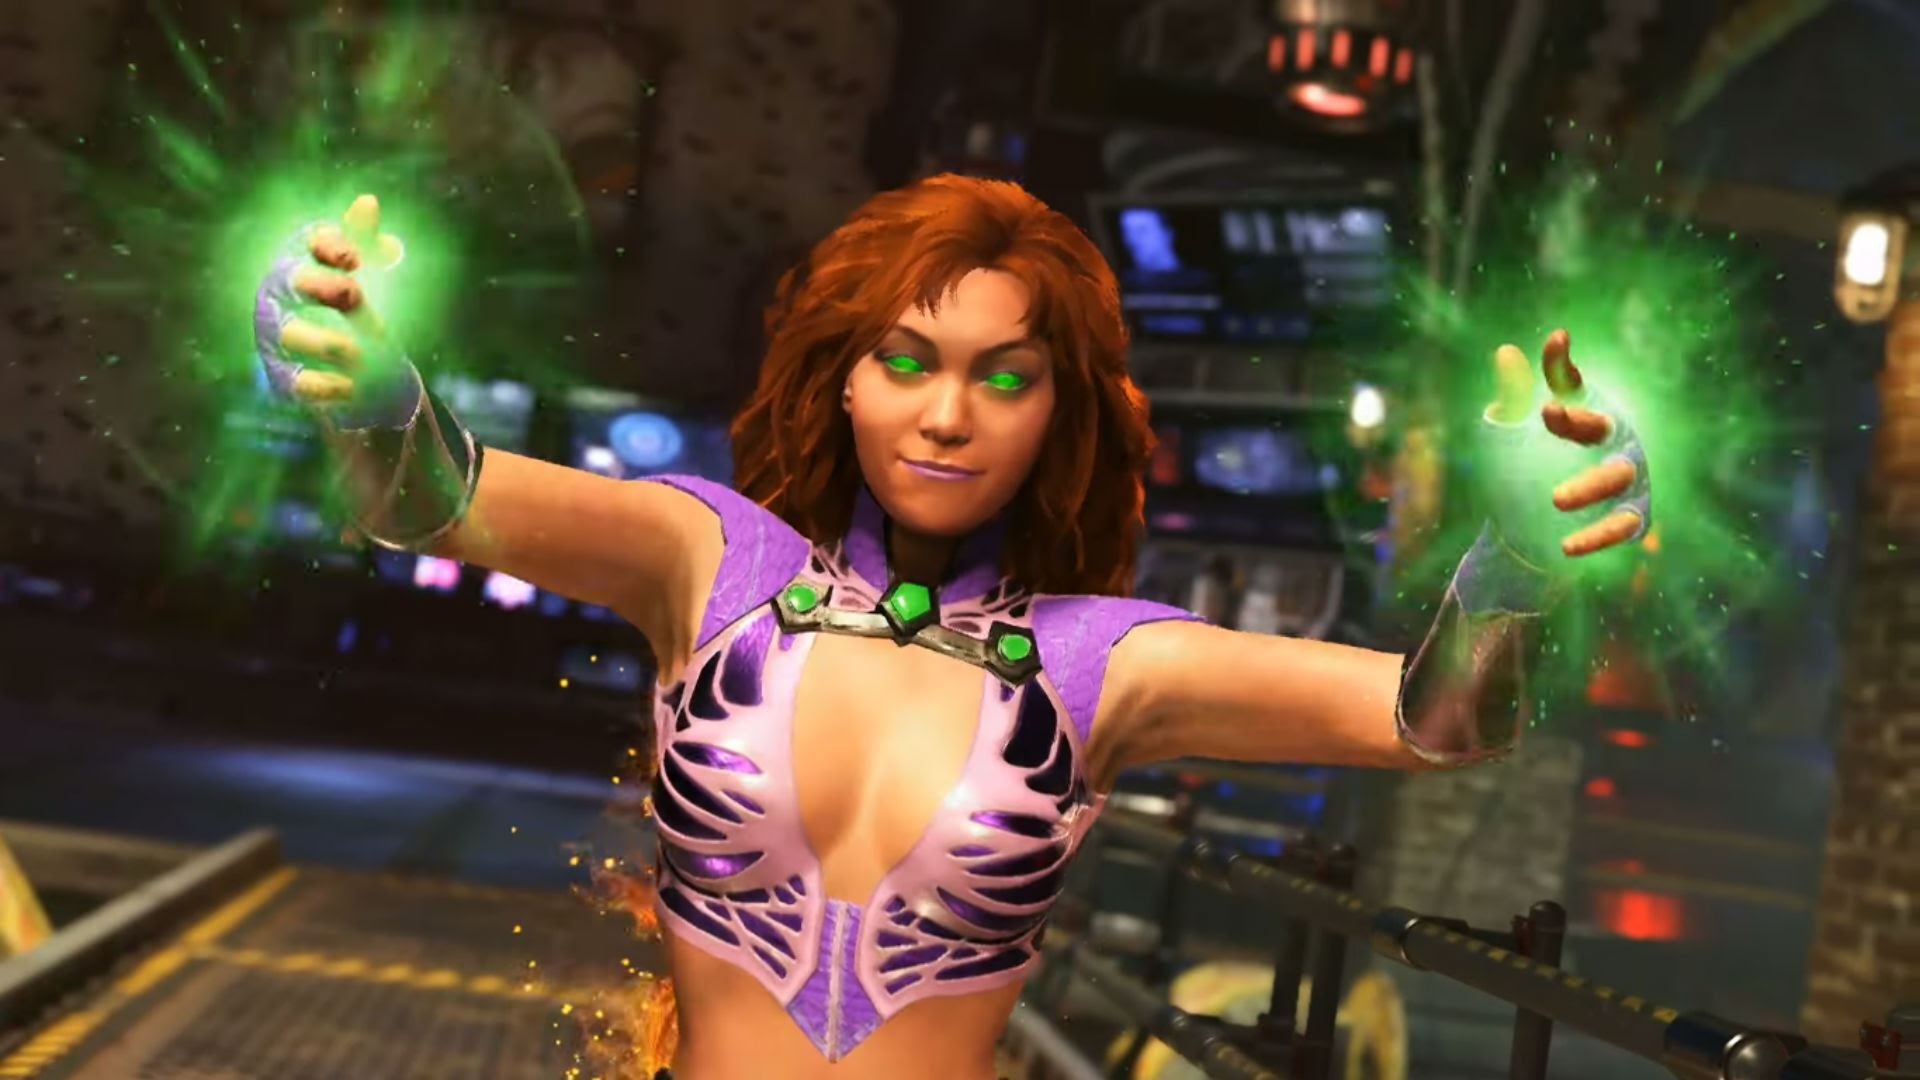 Starfire 'is gonna be a hot one' in Injustice 2 screenshot